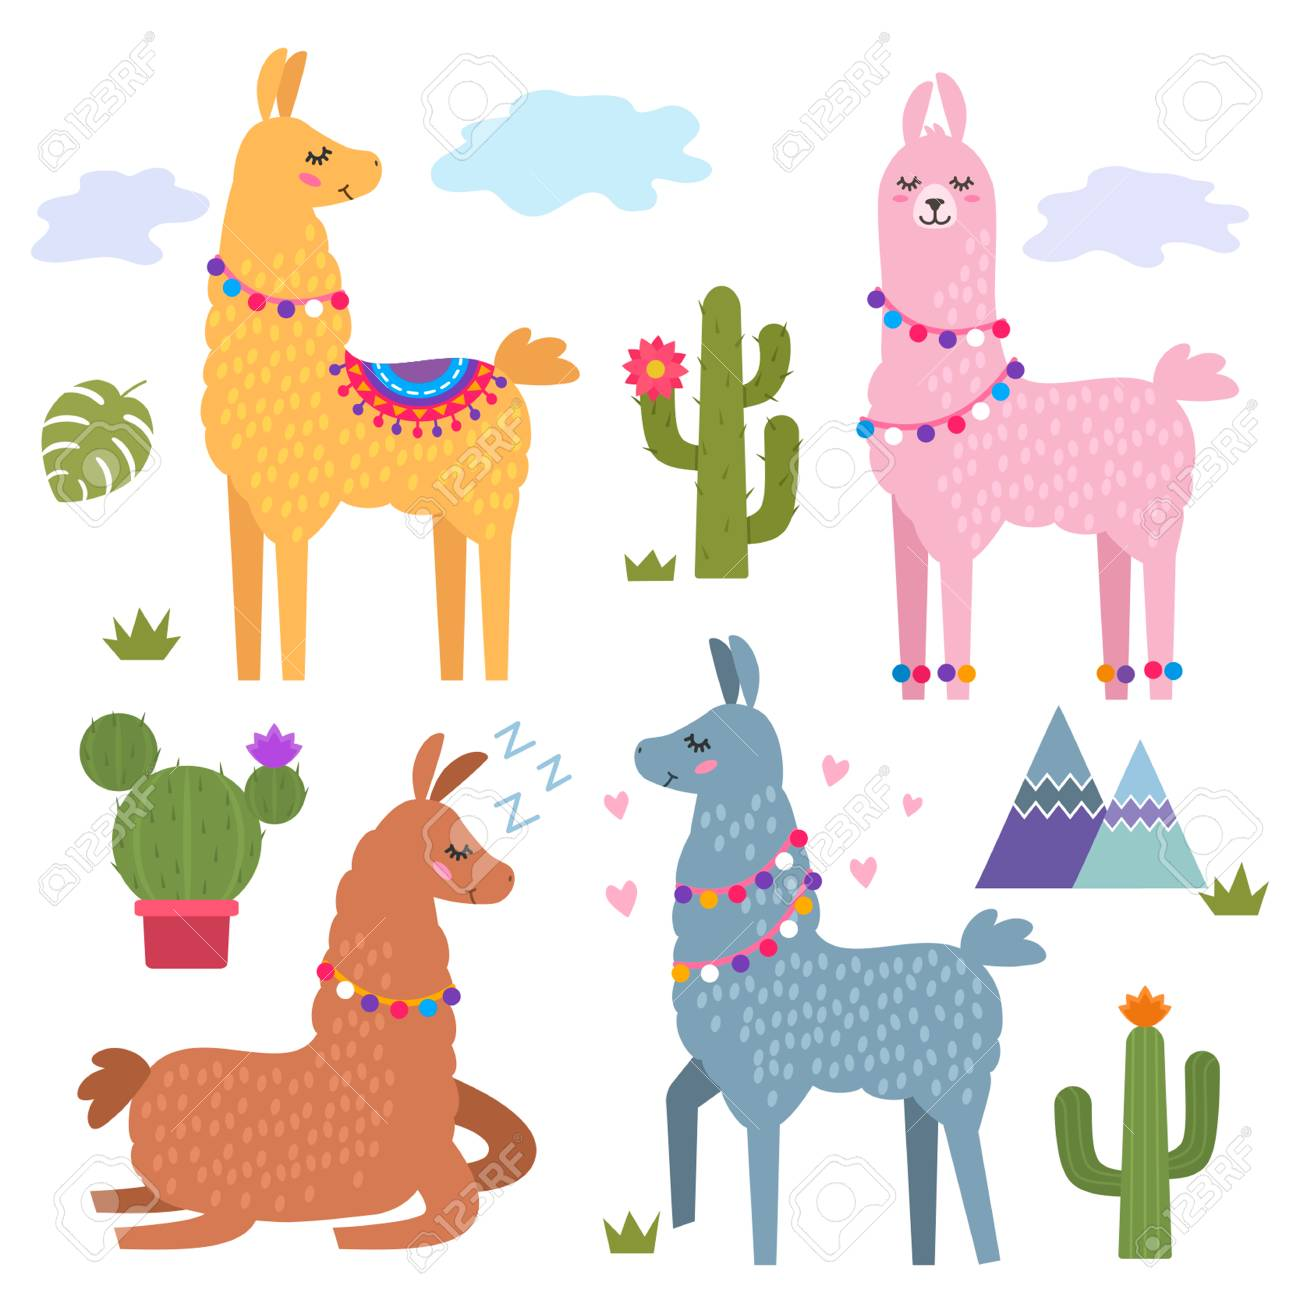 Funny Llama Alpaca With Mountains And Cactus Childrens 1300x1300